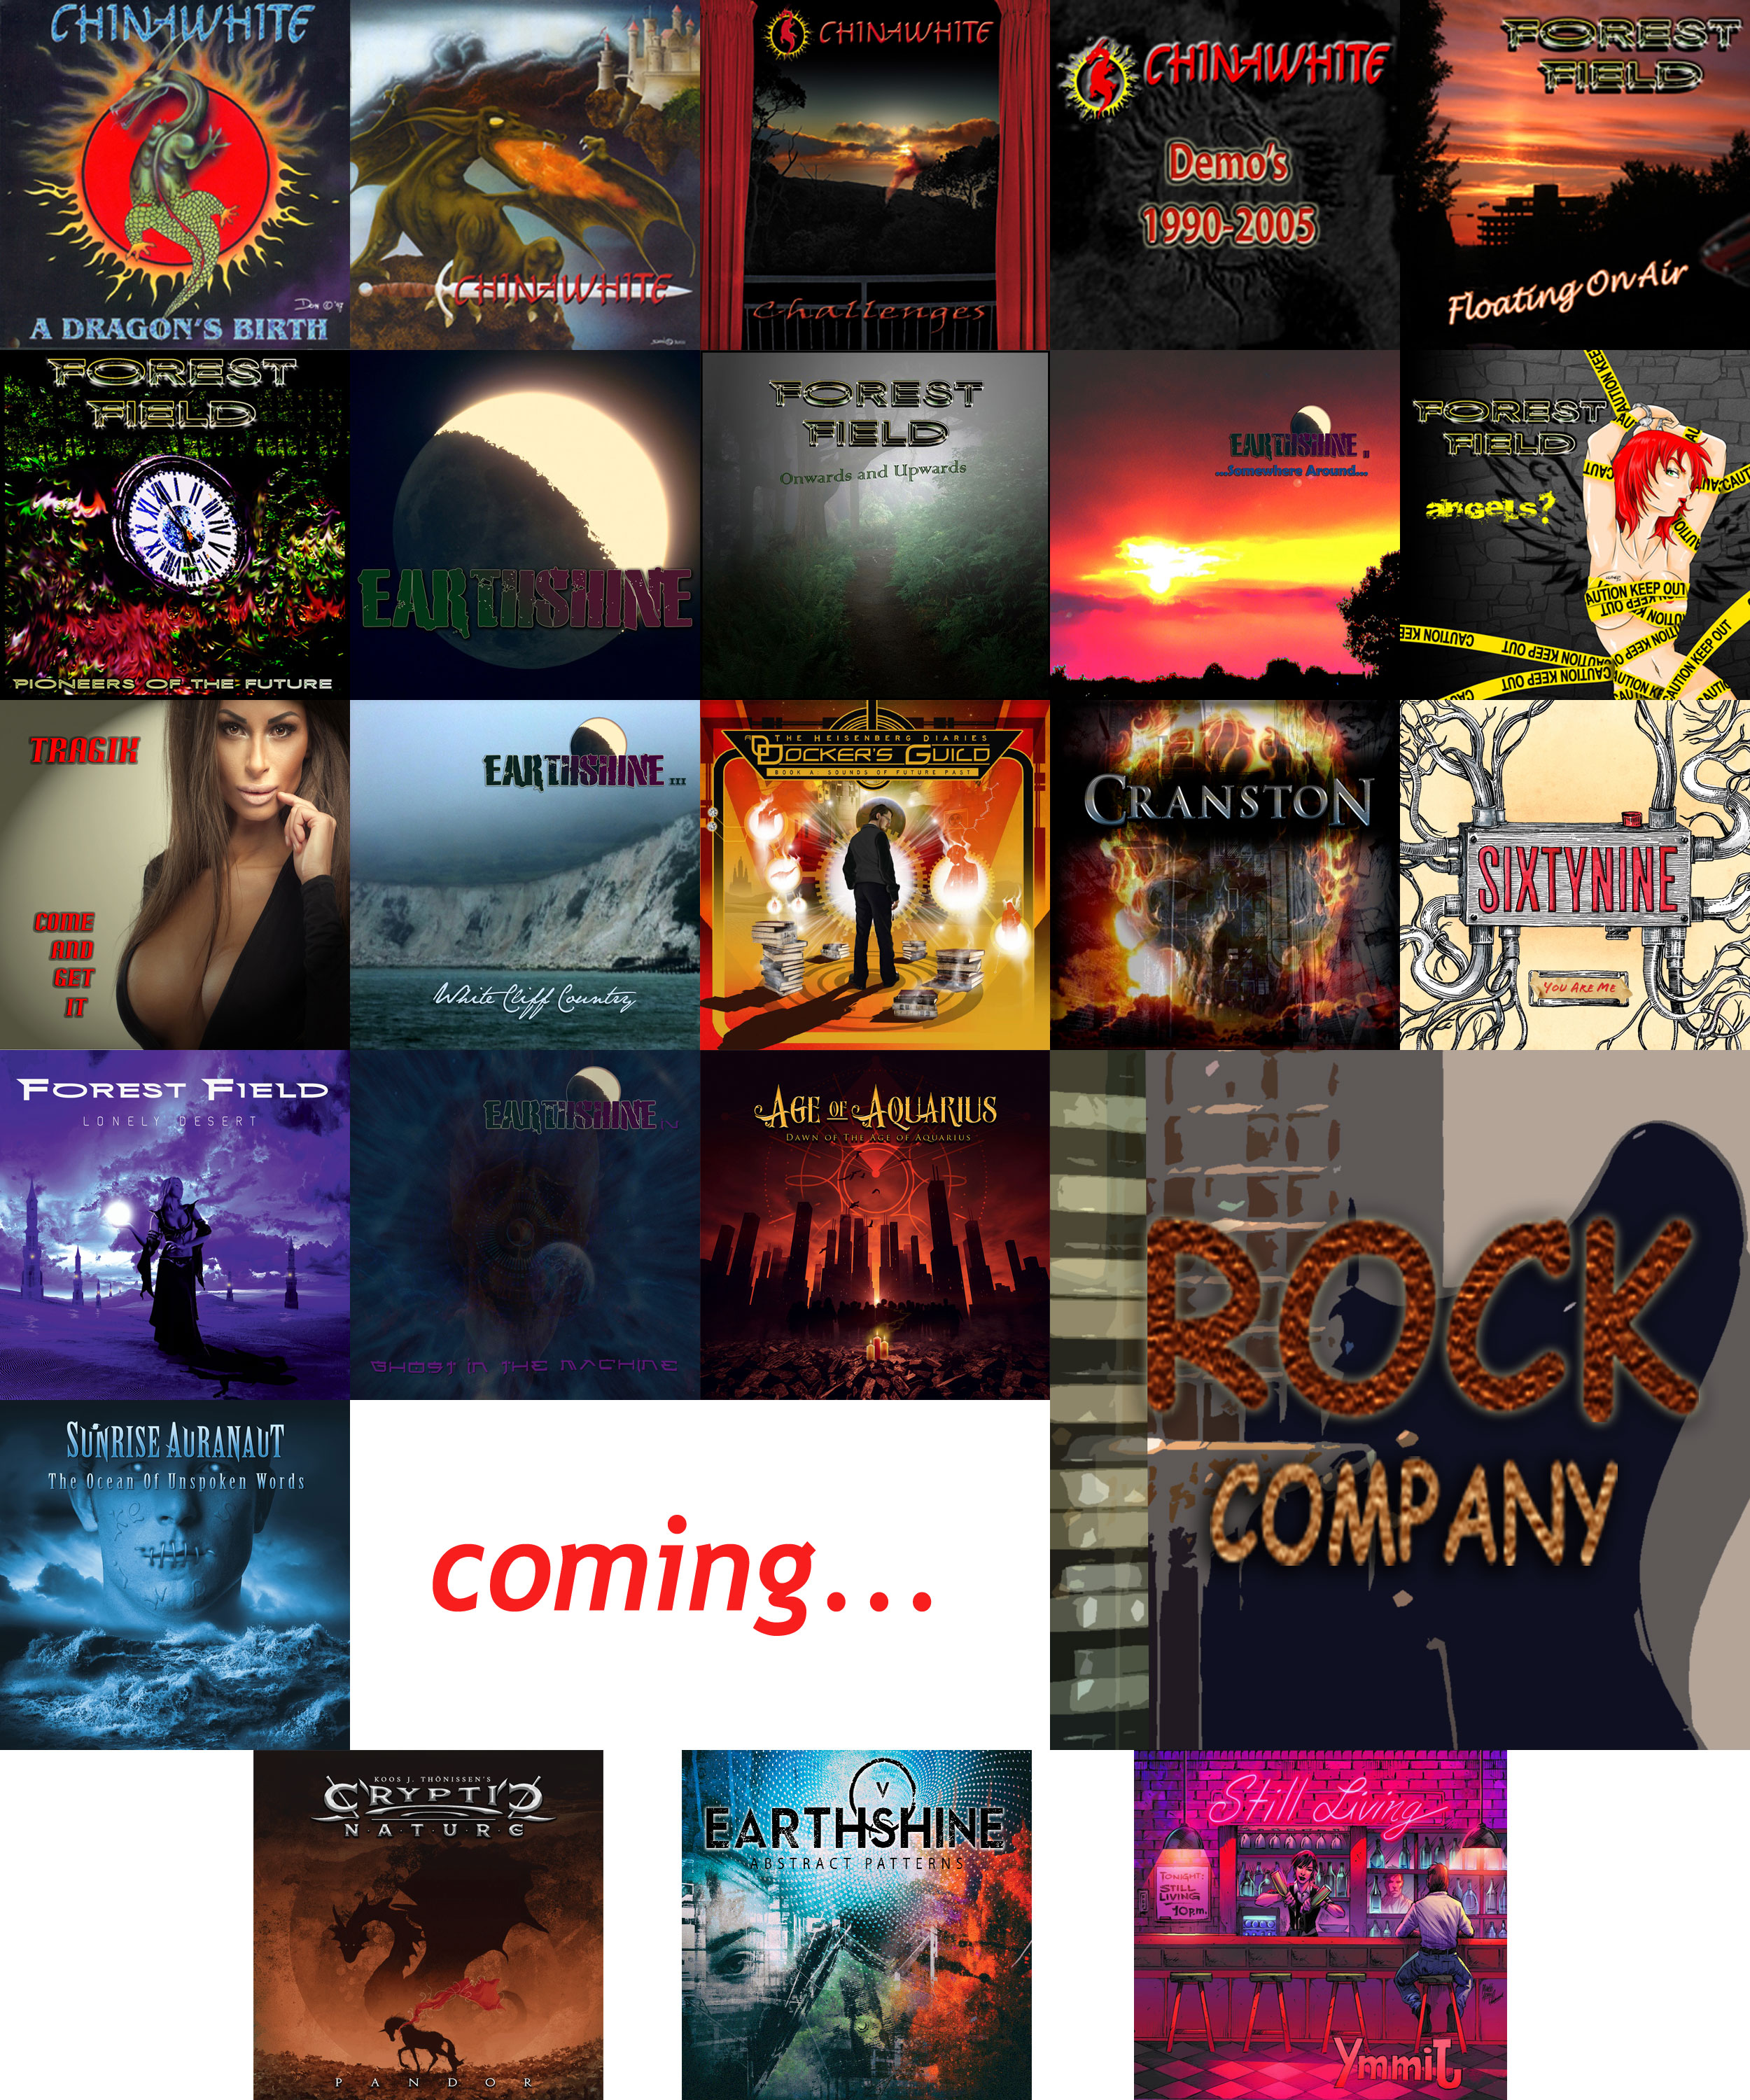 rock company releases